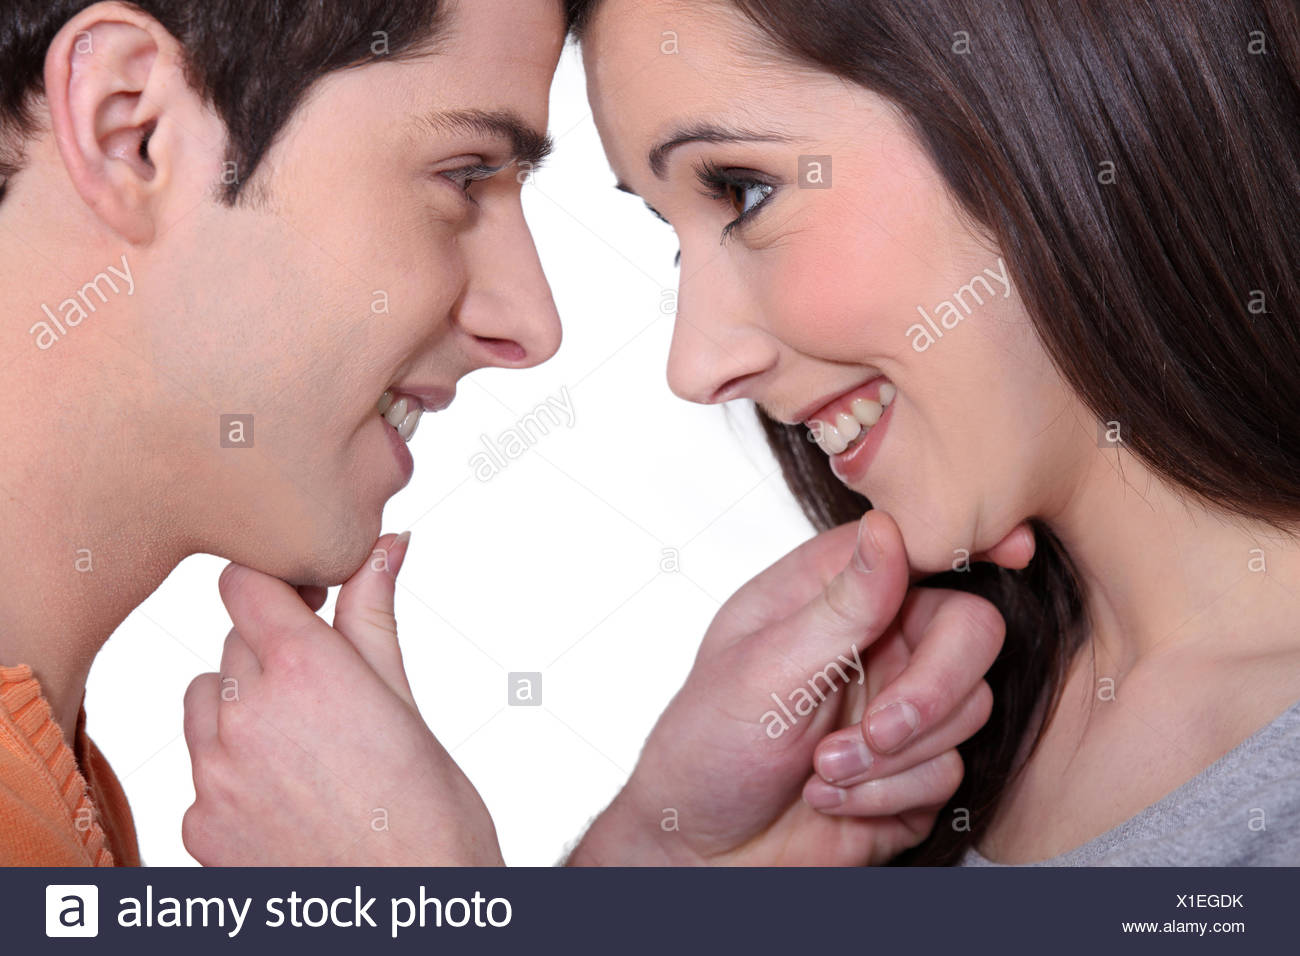 Young couple gazing lovingly into each other's eyes - Stock Image